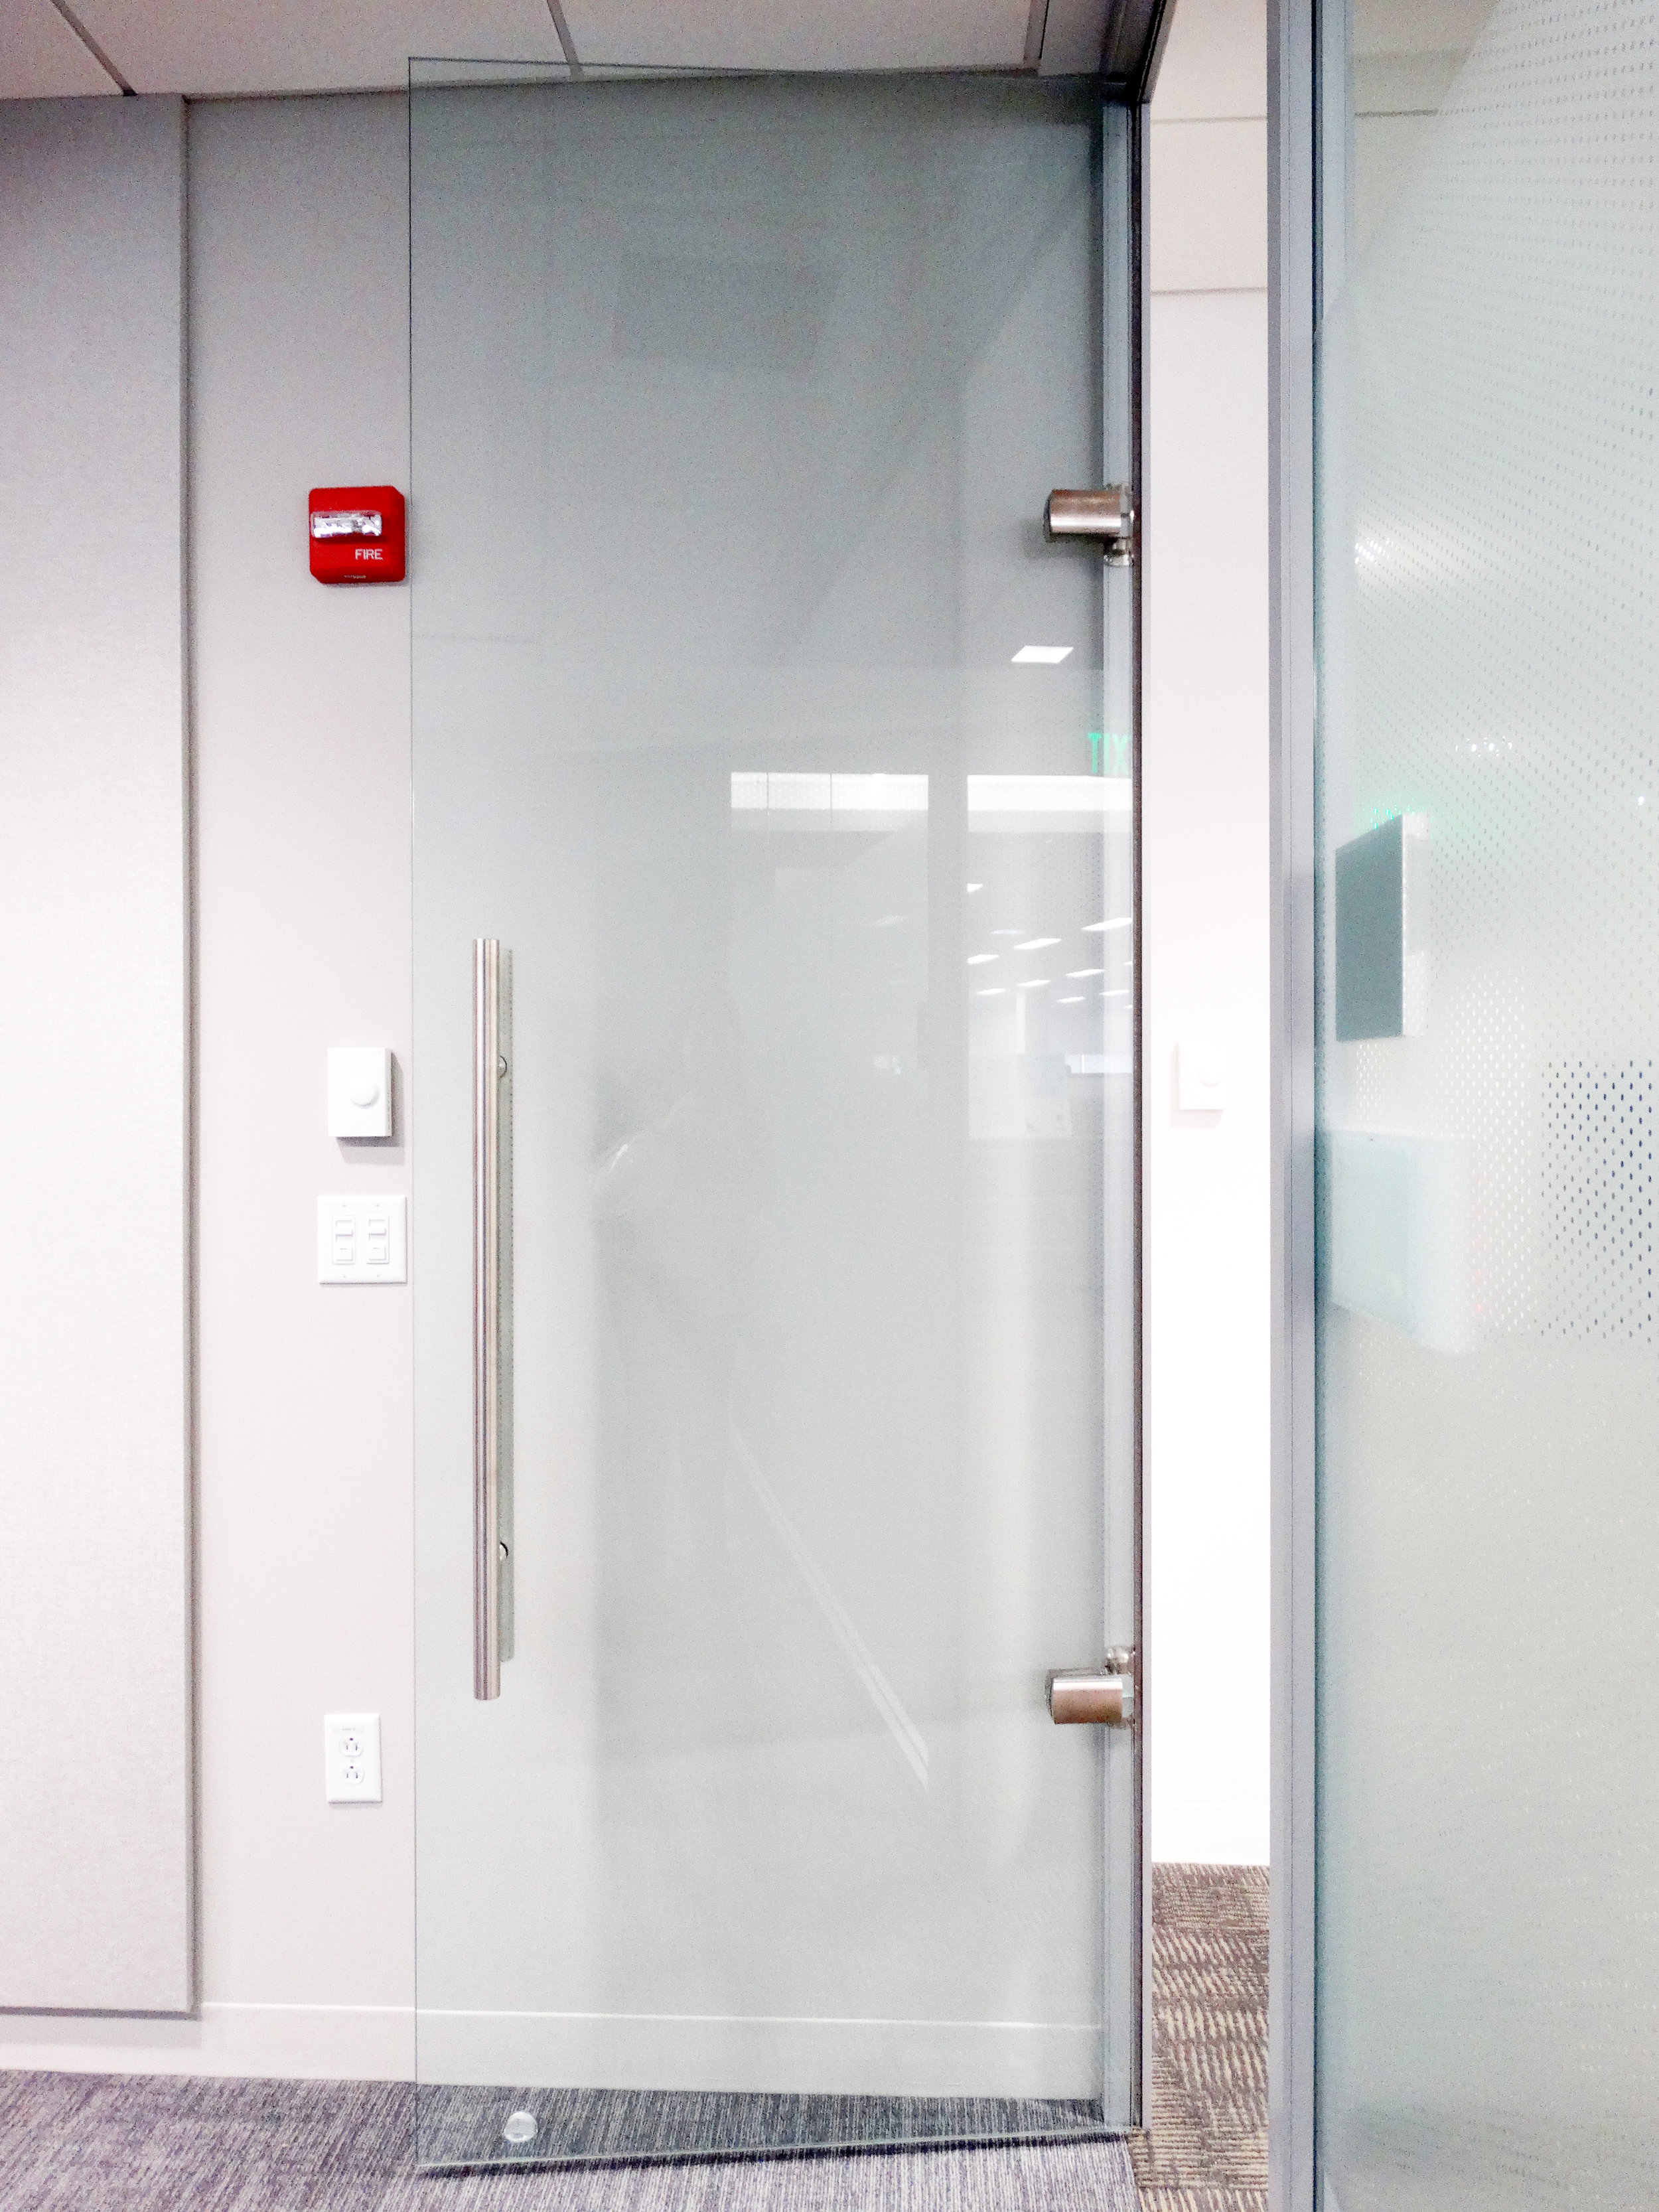 Litespace Frameless Glass Door Hydraulic Glass Hinges - Spaceworks AI.jpg